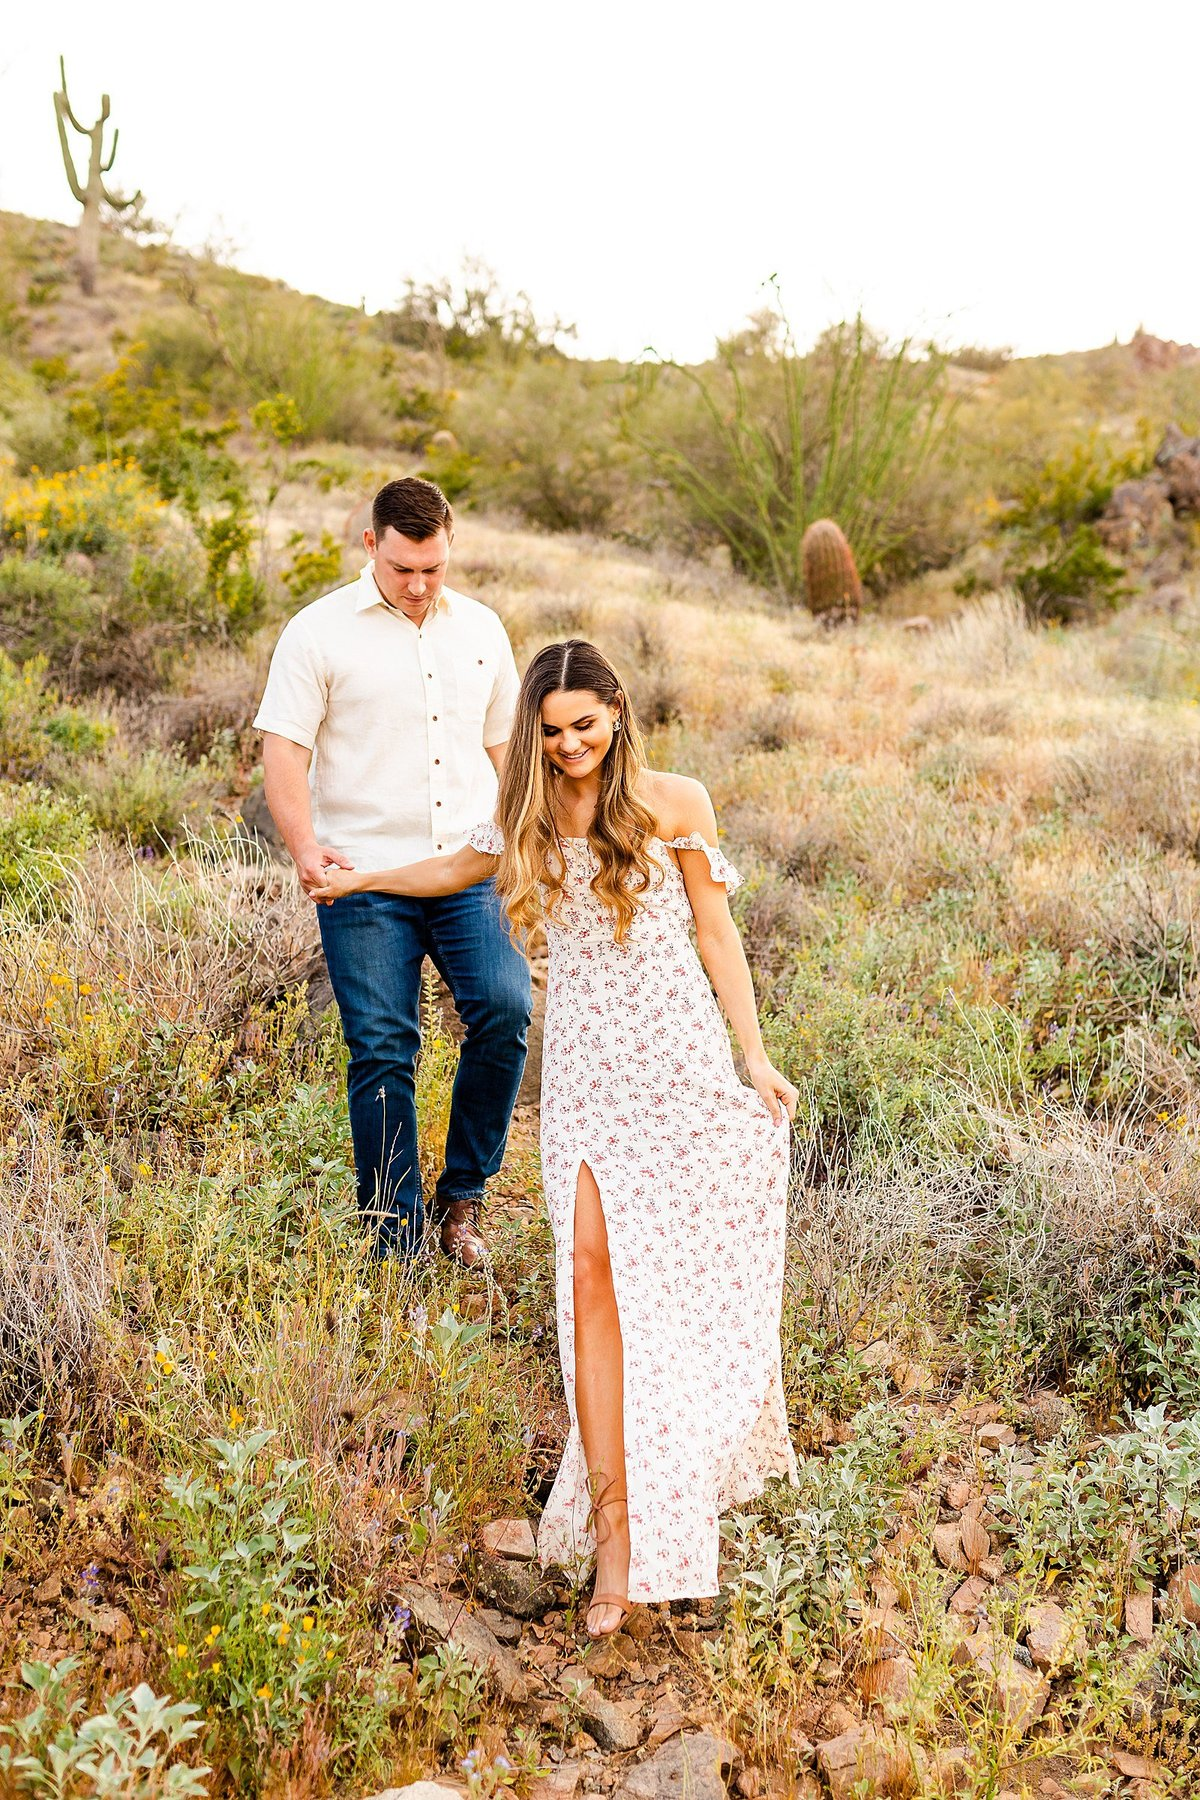 Samantha + Vince - Engagement Session - Lunabear Studios-109_Blog